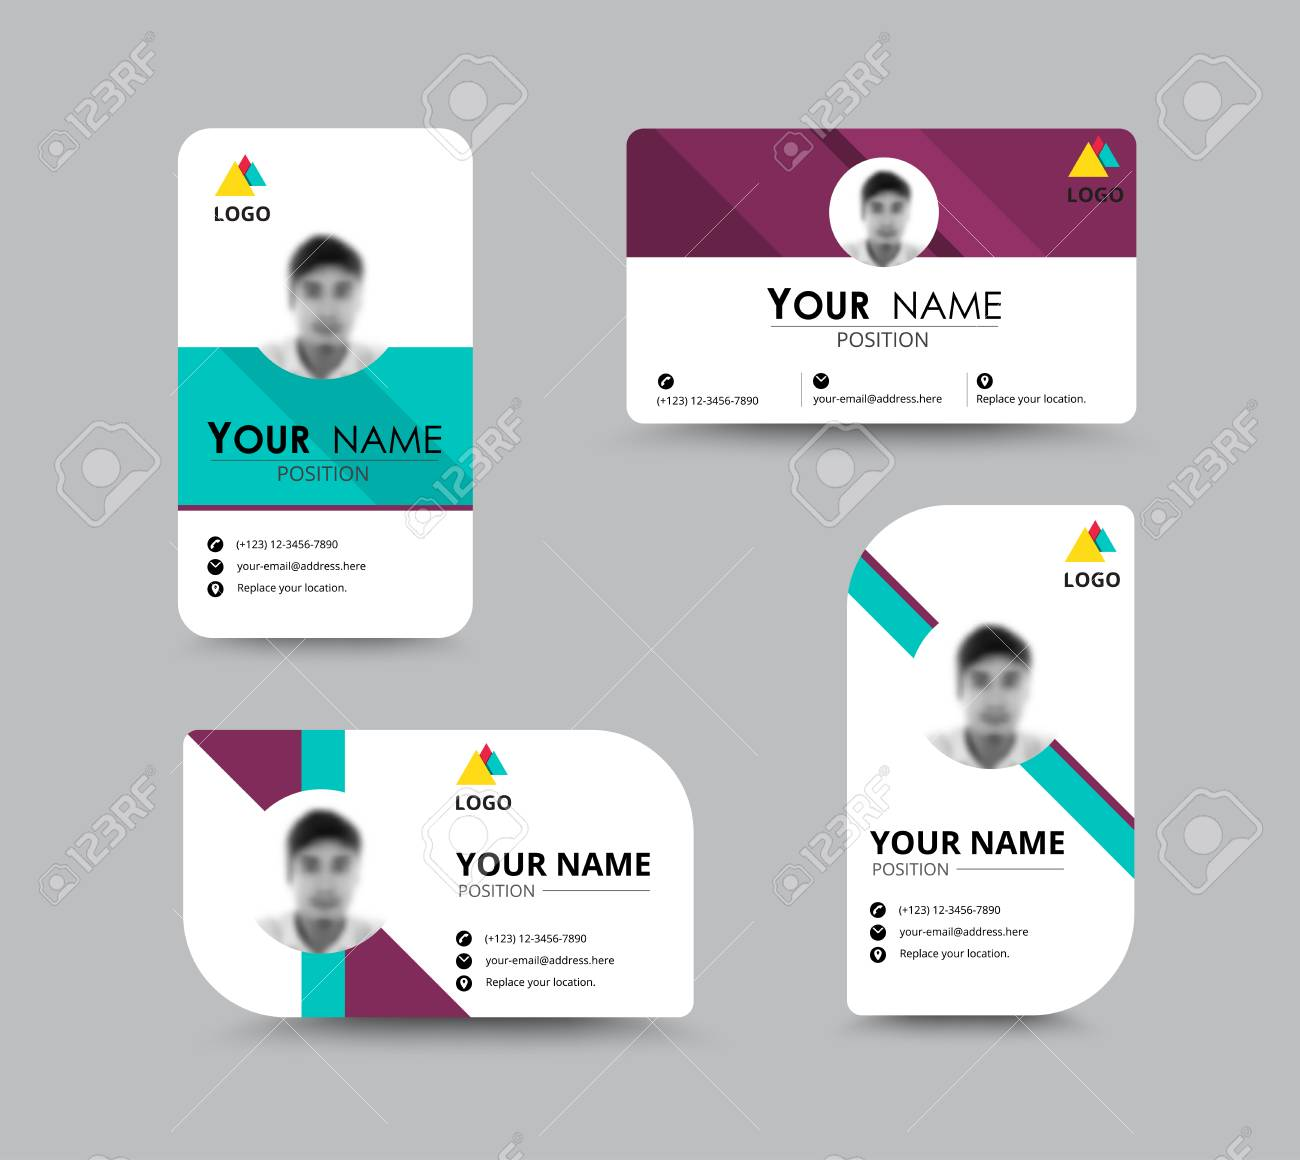 Business greeting card template design introduce card include banco de imagens business greeting card template design introduce card include sample text position vector illustration design reheart Choice Image